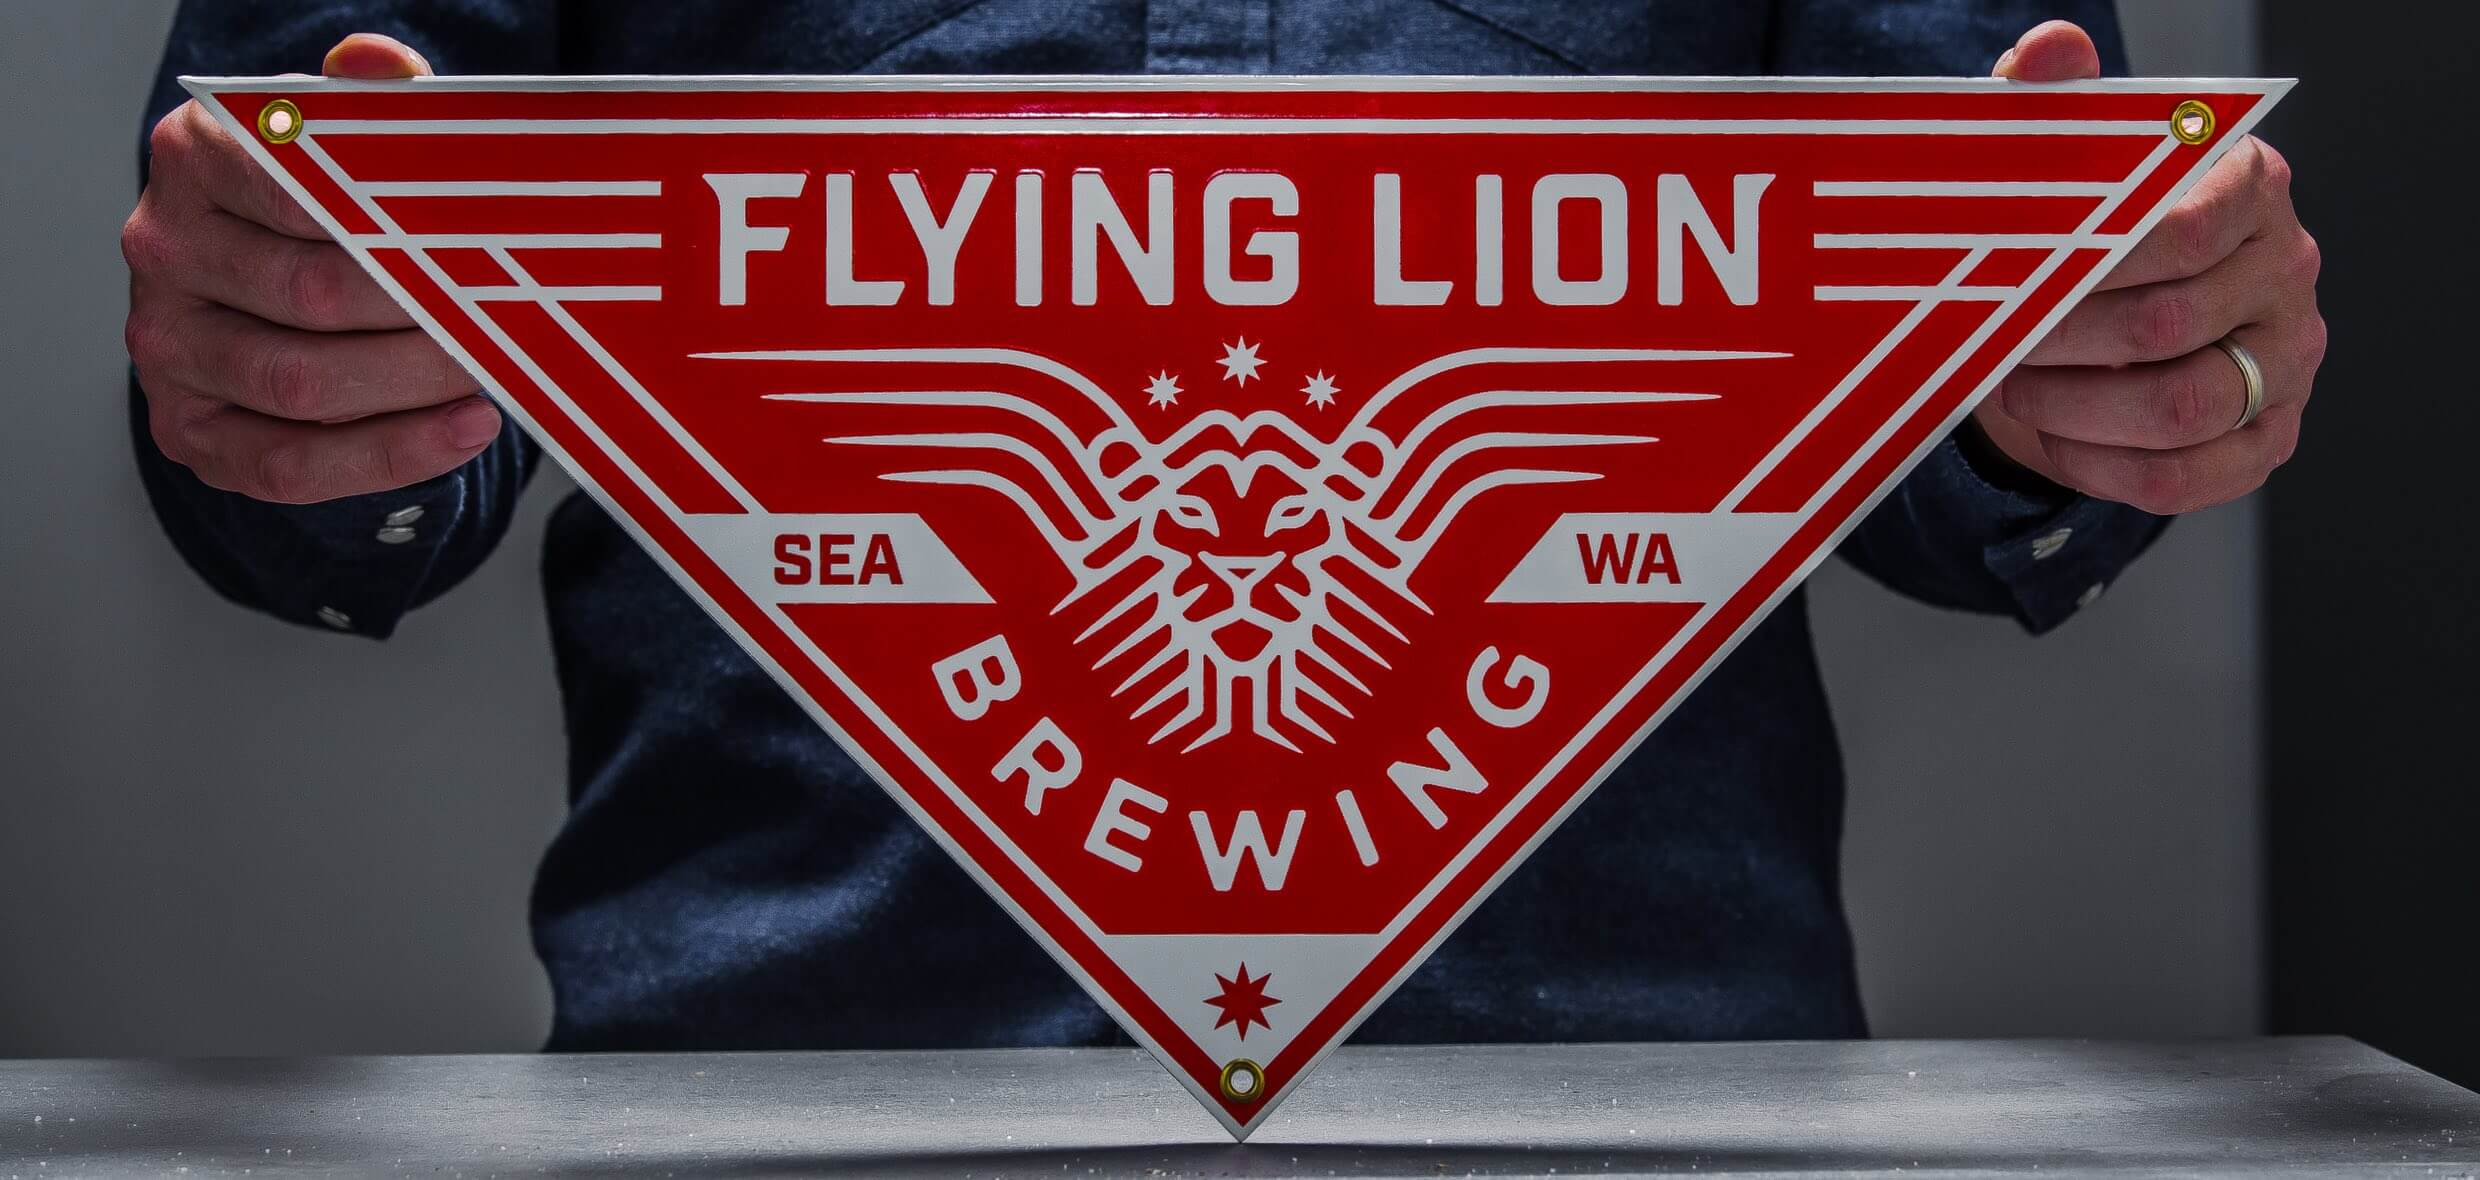 steely-spirits-branding-flying-lion@2x.jpg